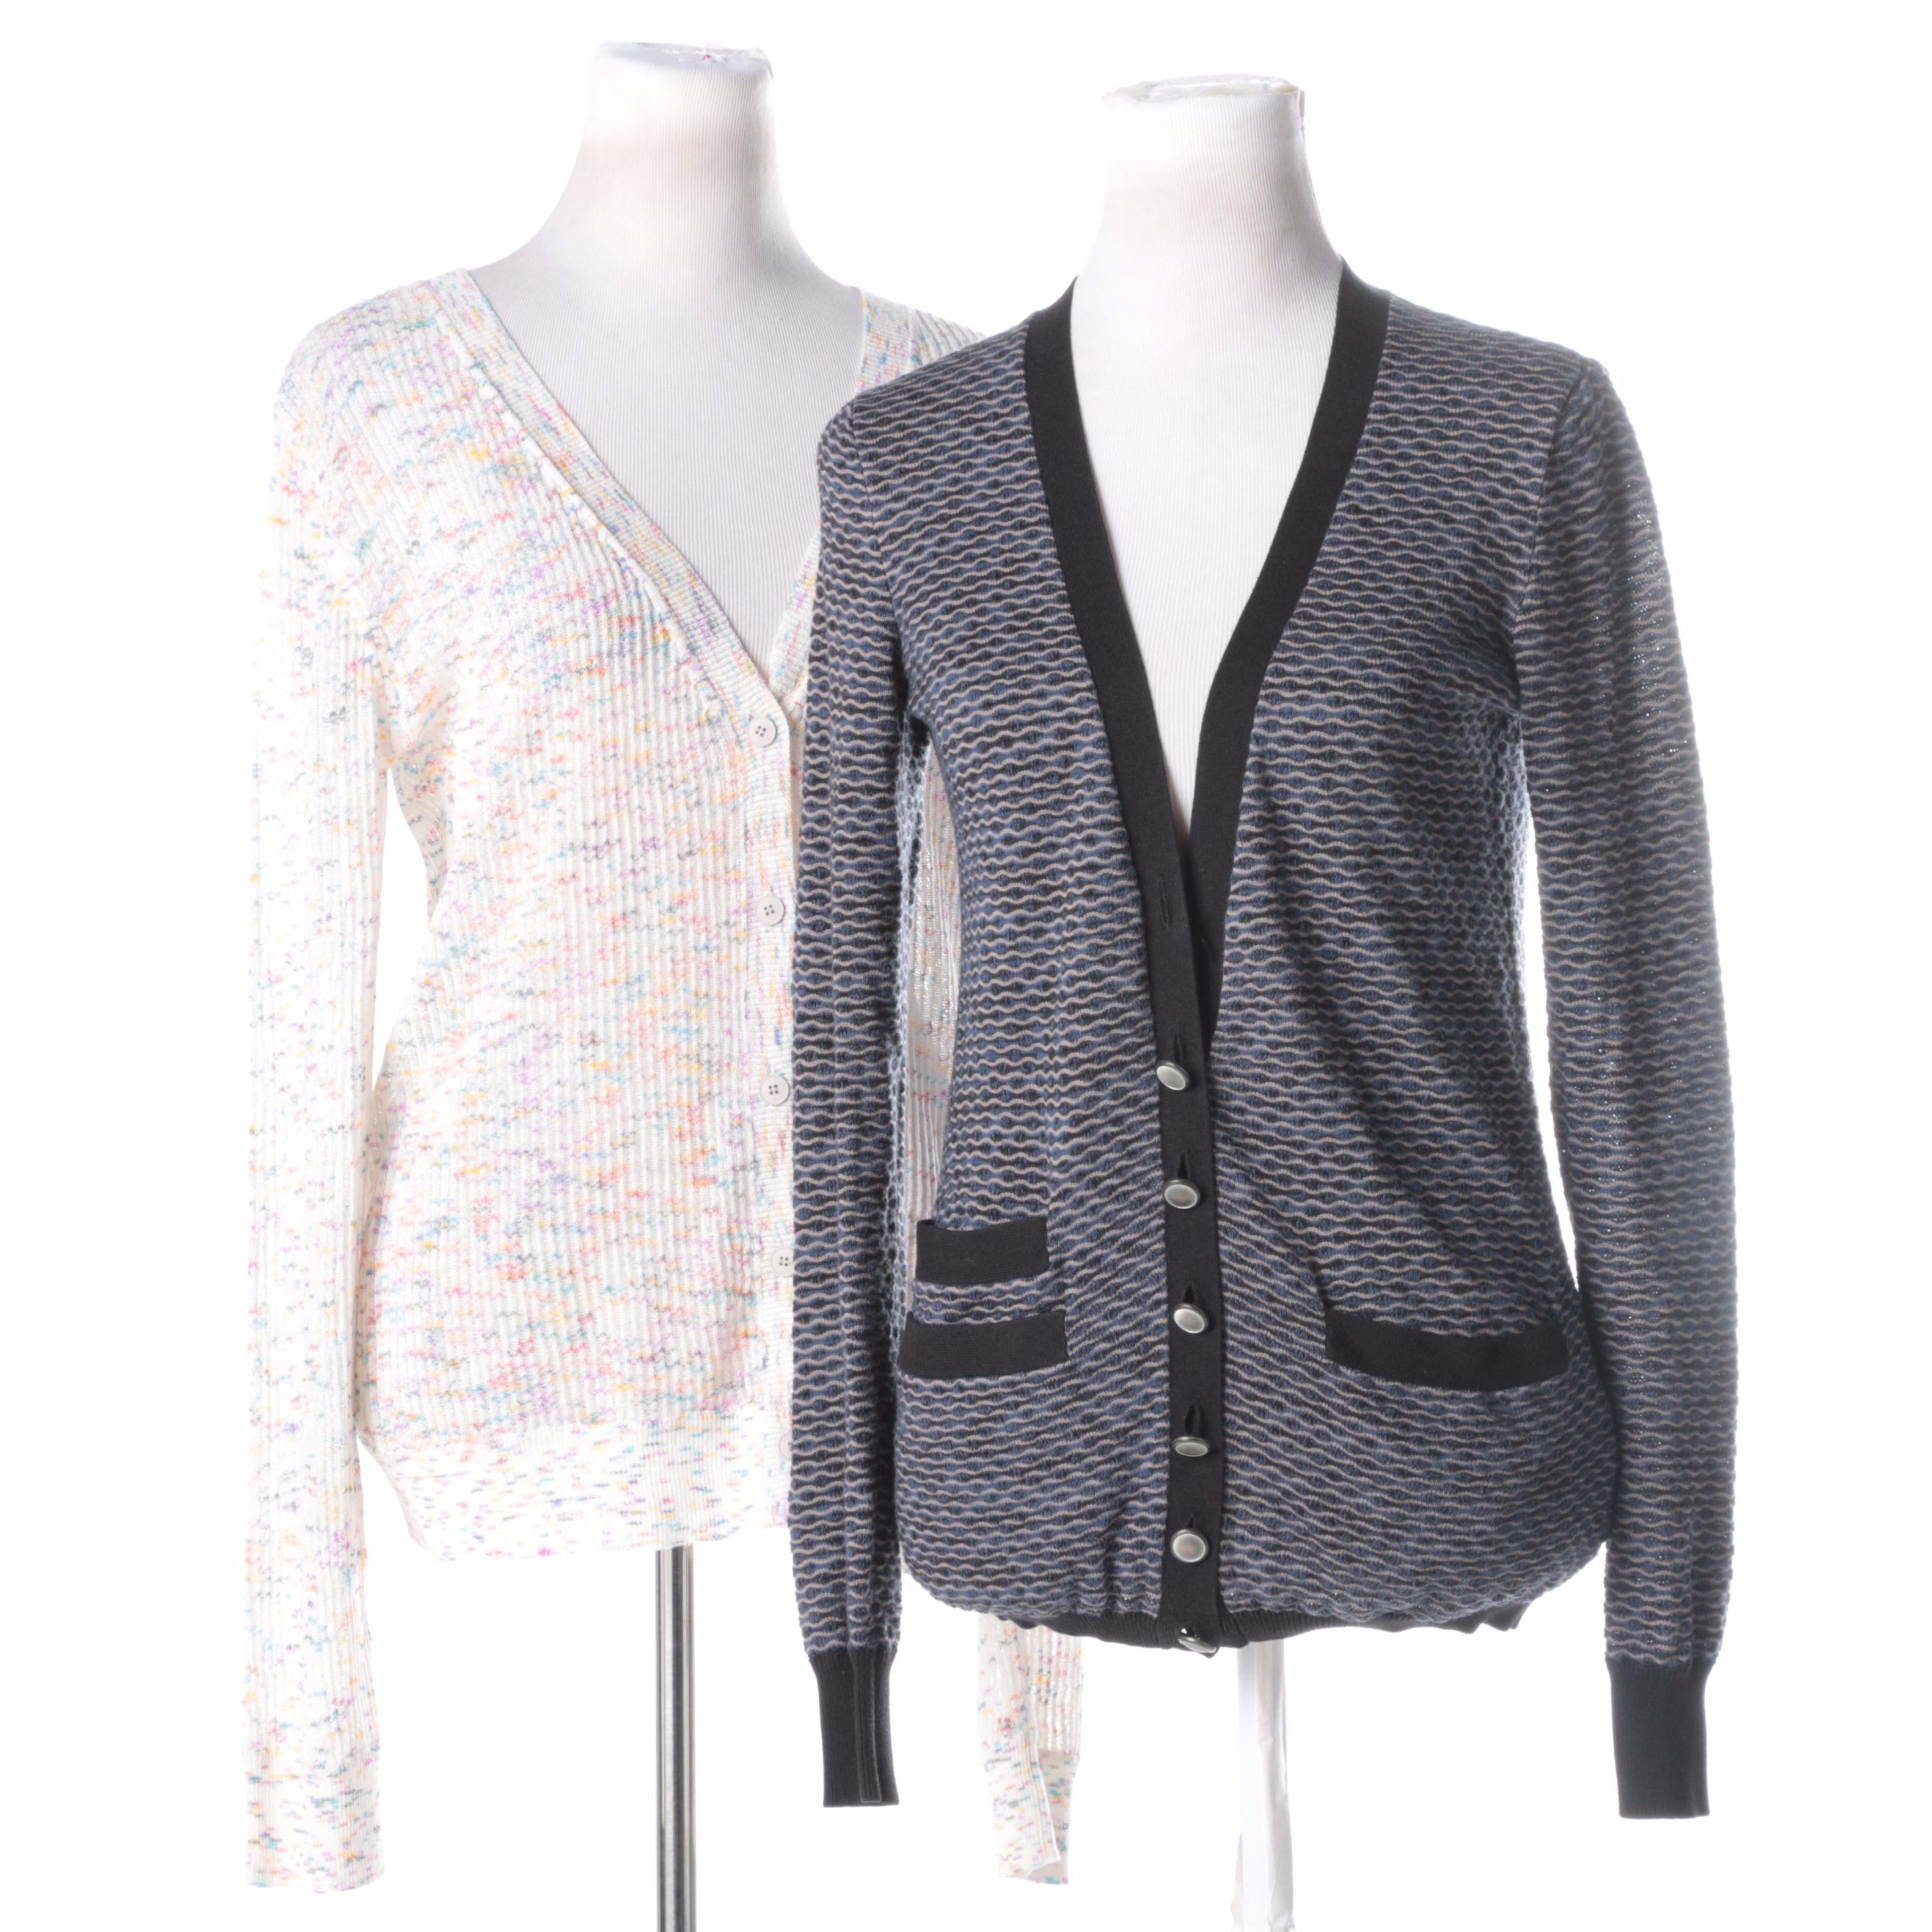 Women's Marc by Marc Jacobs and Alexander Wang Cardigans